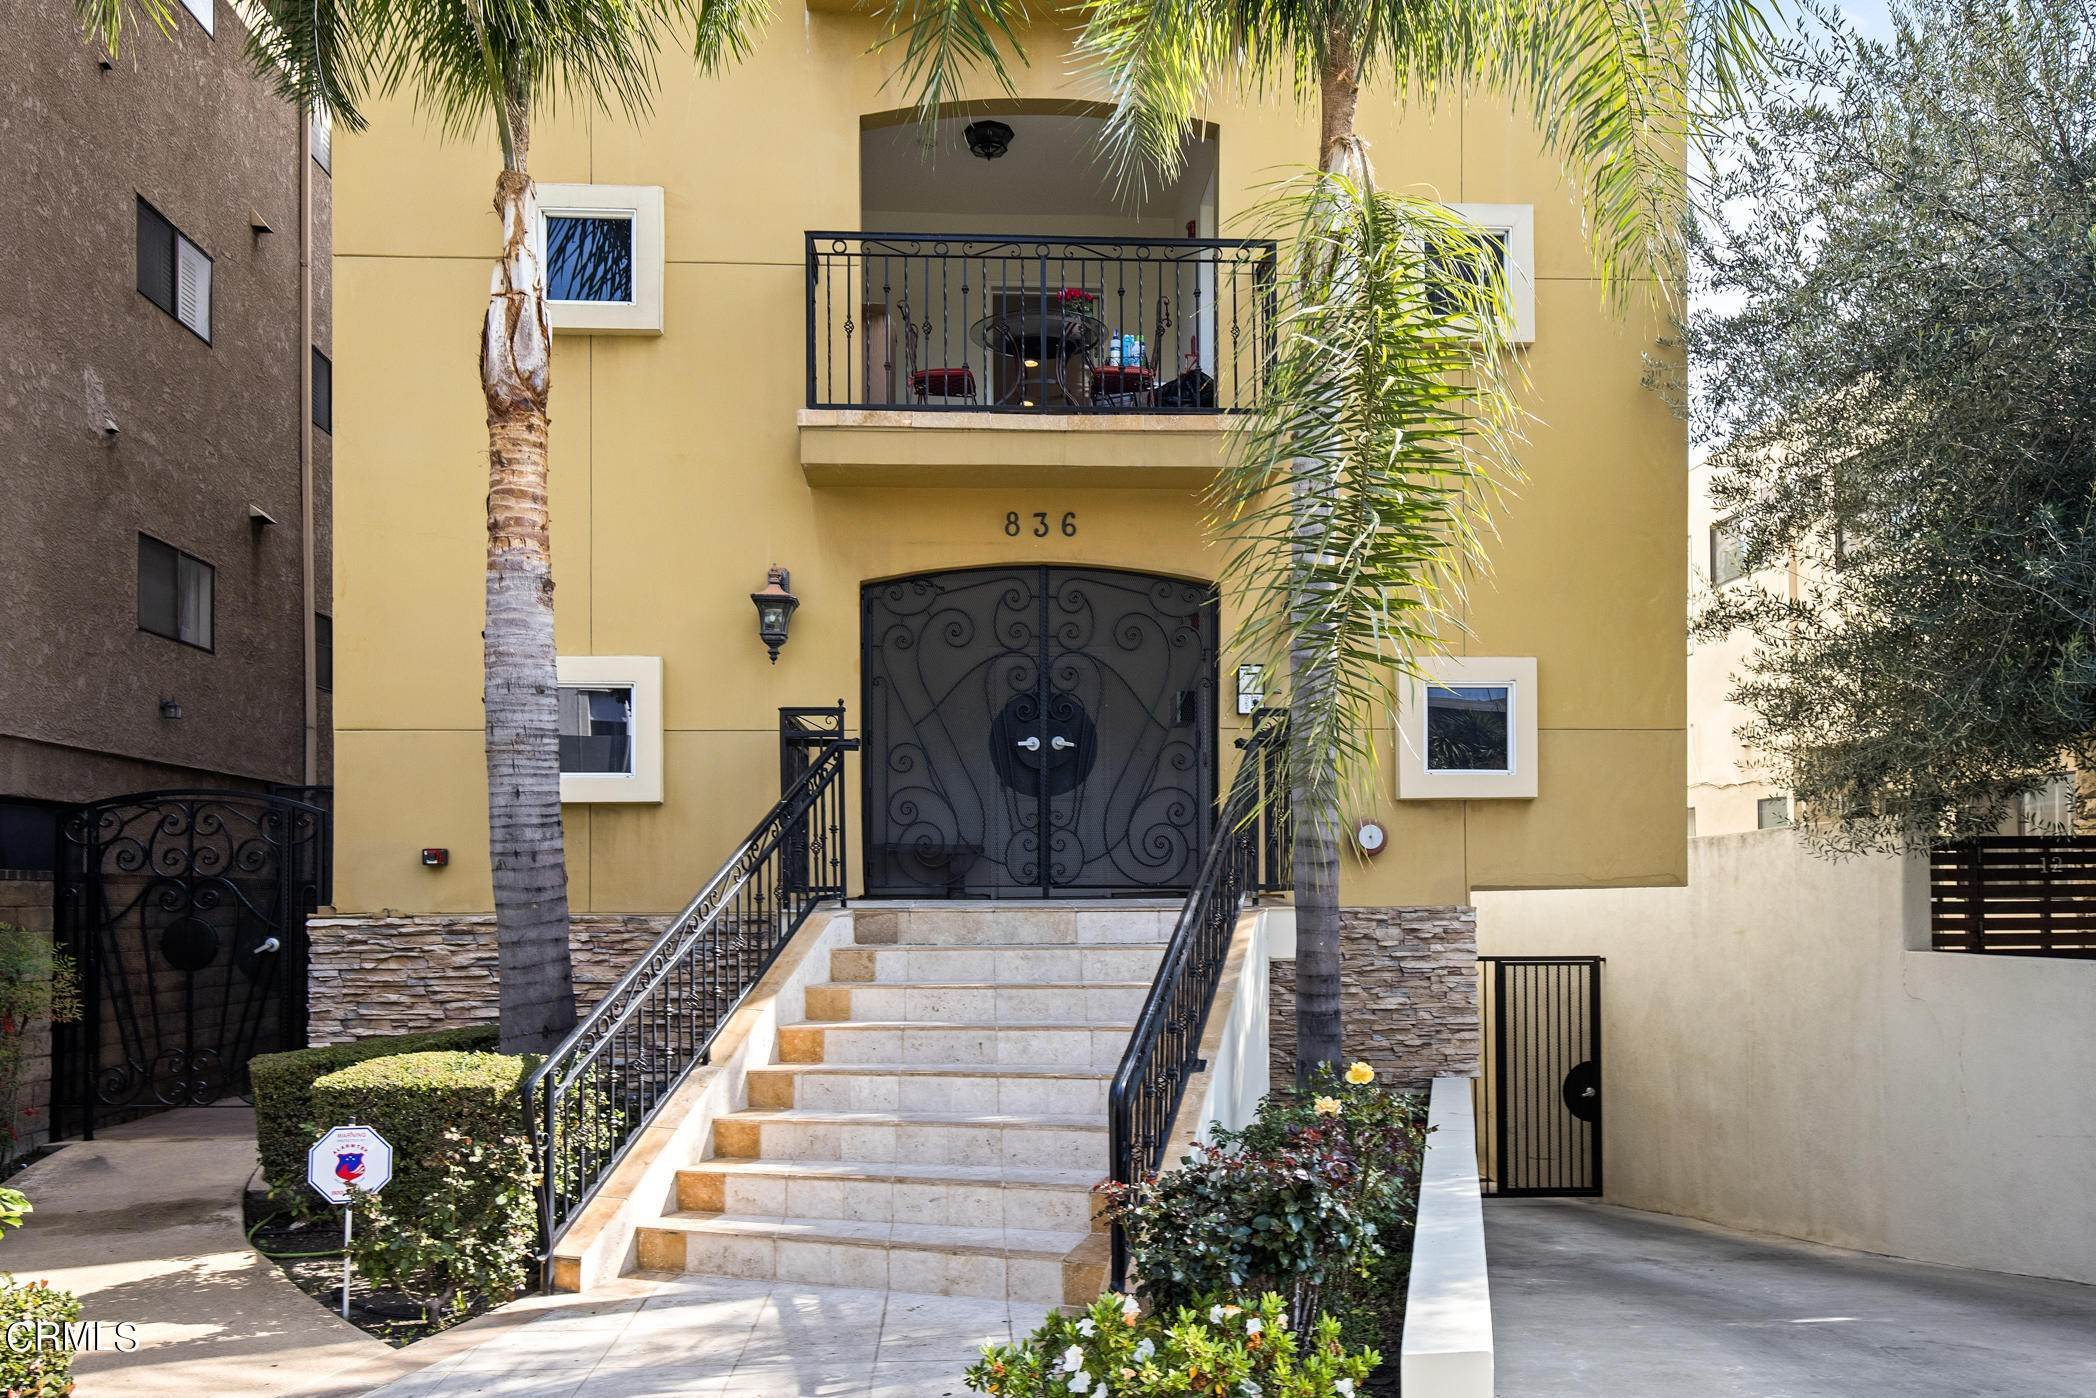 4. Condominiums for Sale at 836 South Bedford Street #200 836 South Bedford Street Los Angeles, California 90035 United States